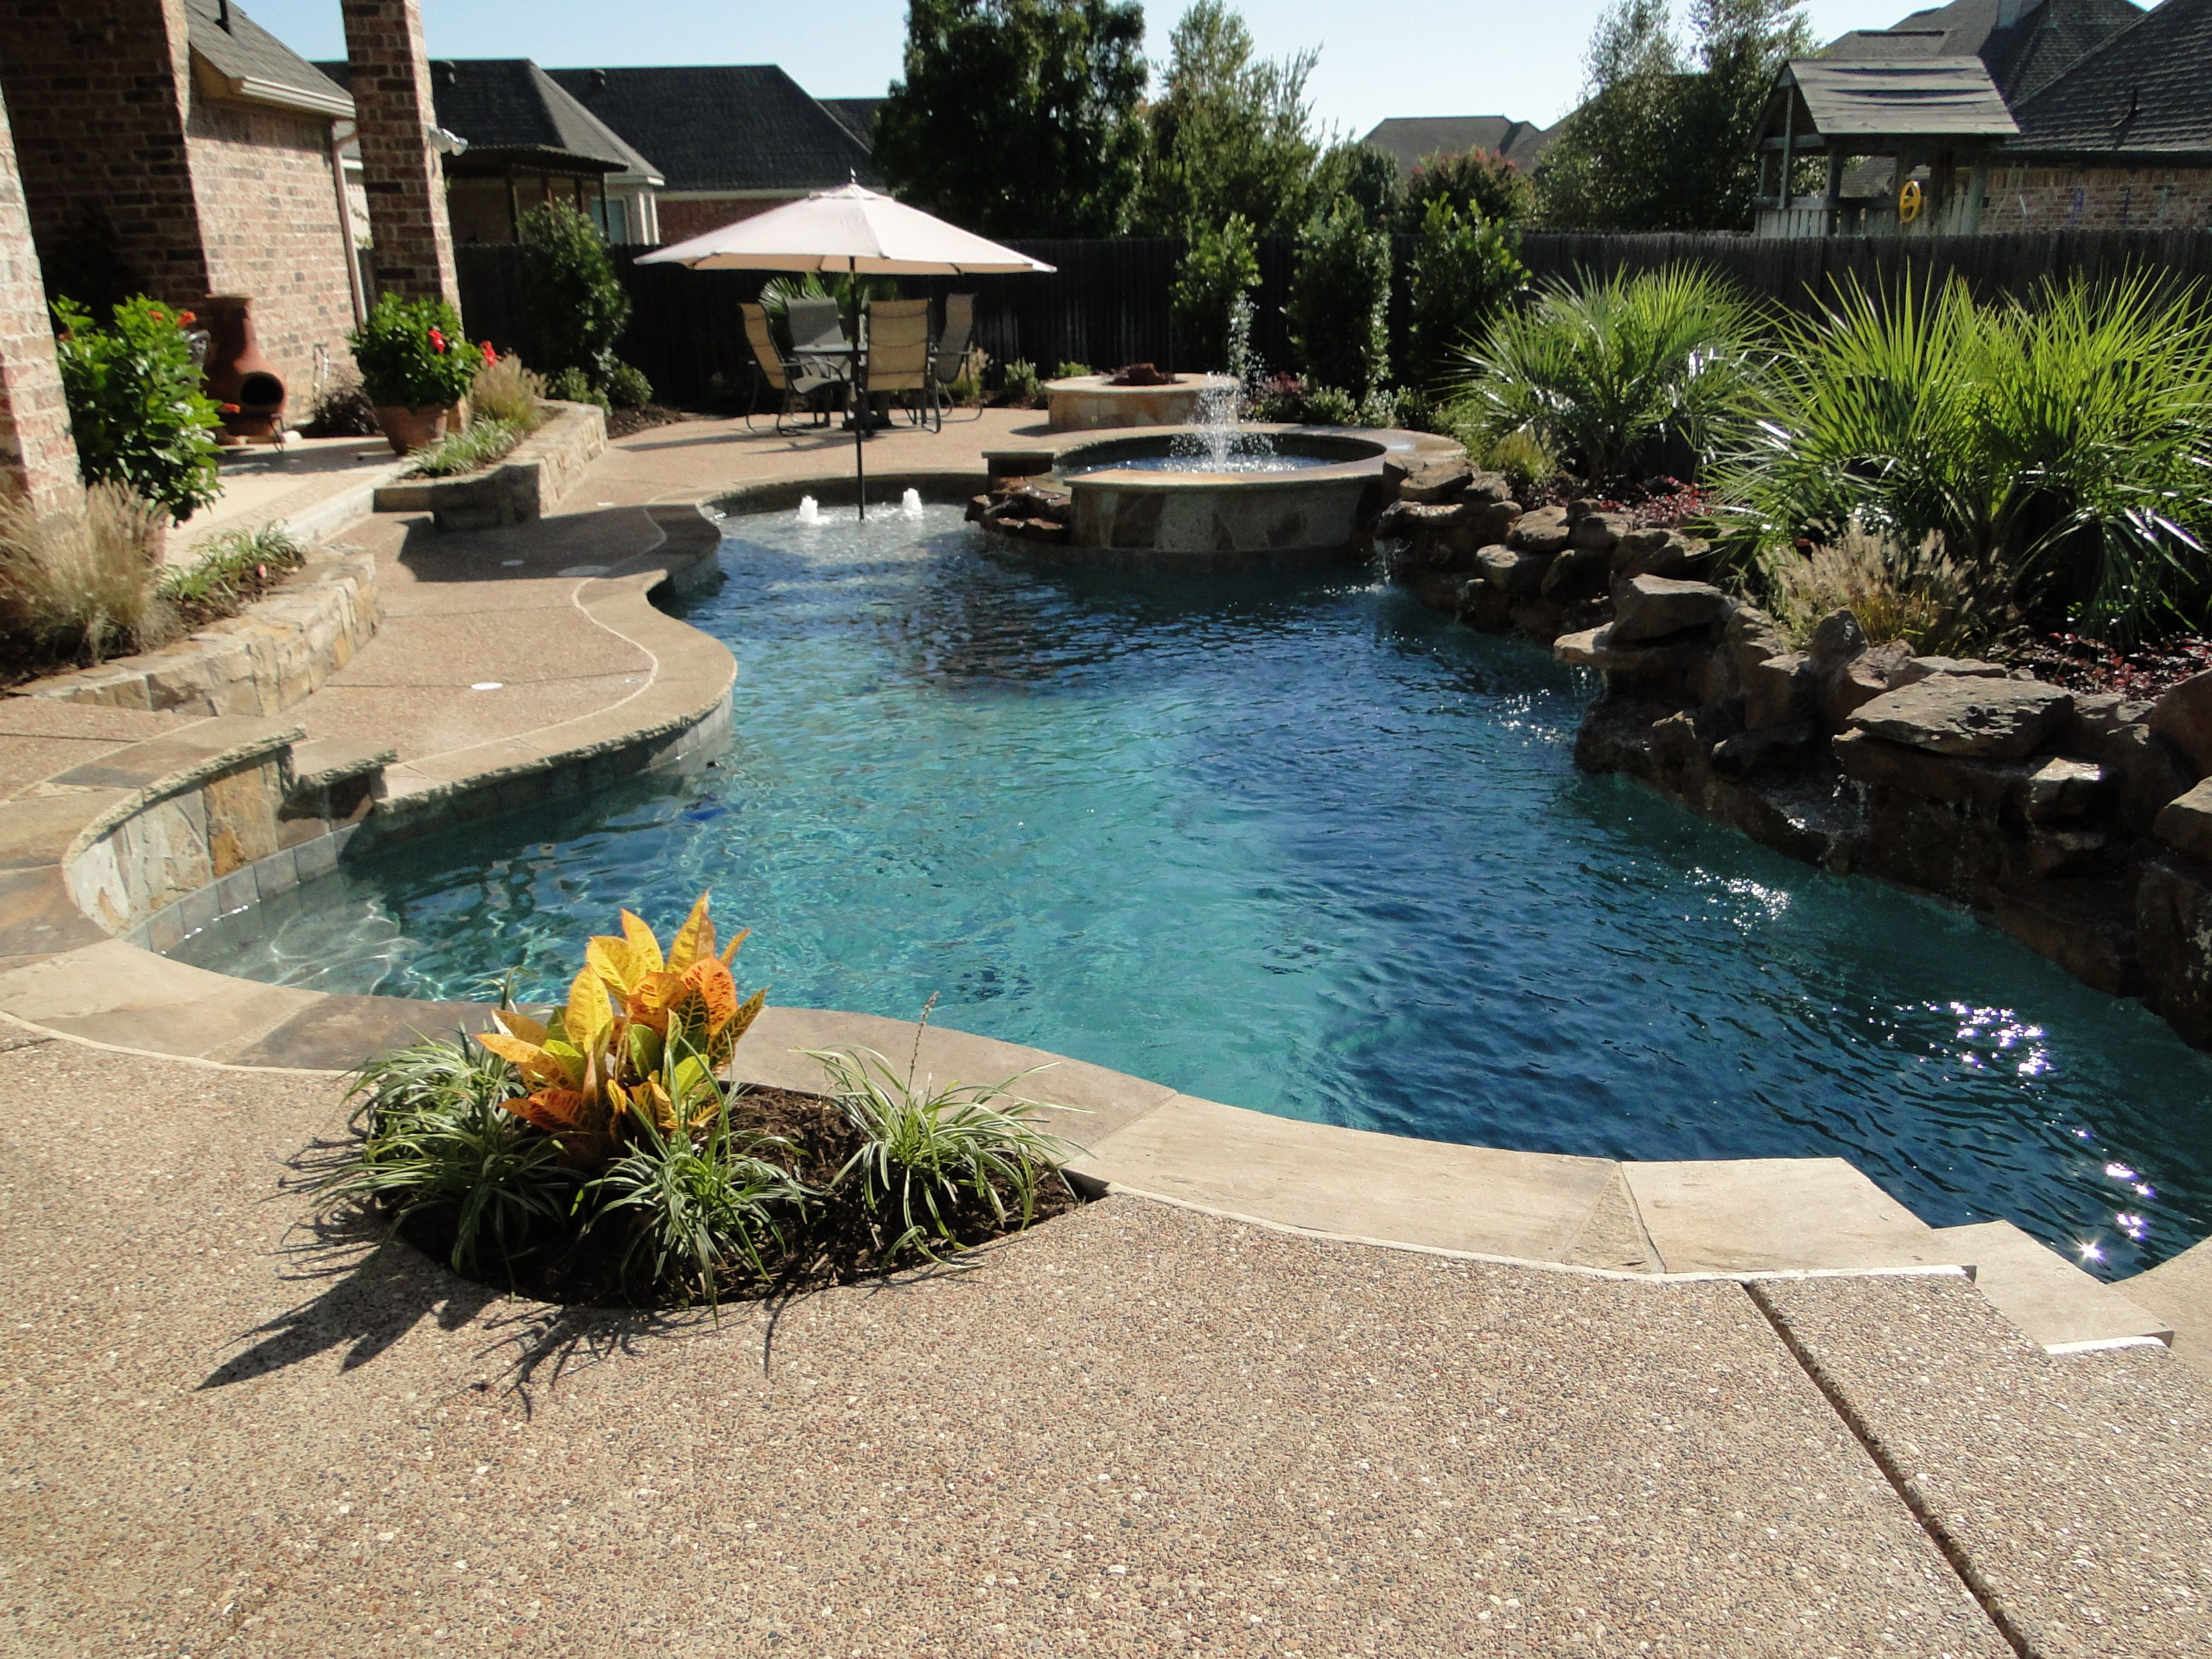 Natural Freefrom Pool North Richland Hills Texas Boulder Backyard Landscaping Ideas Swimming Pool Backyard Pool Designs Small Backyard Pools Beautiful Pools